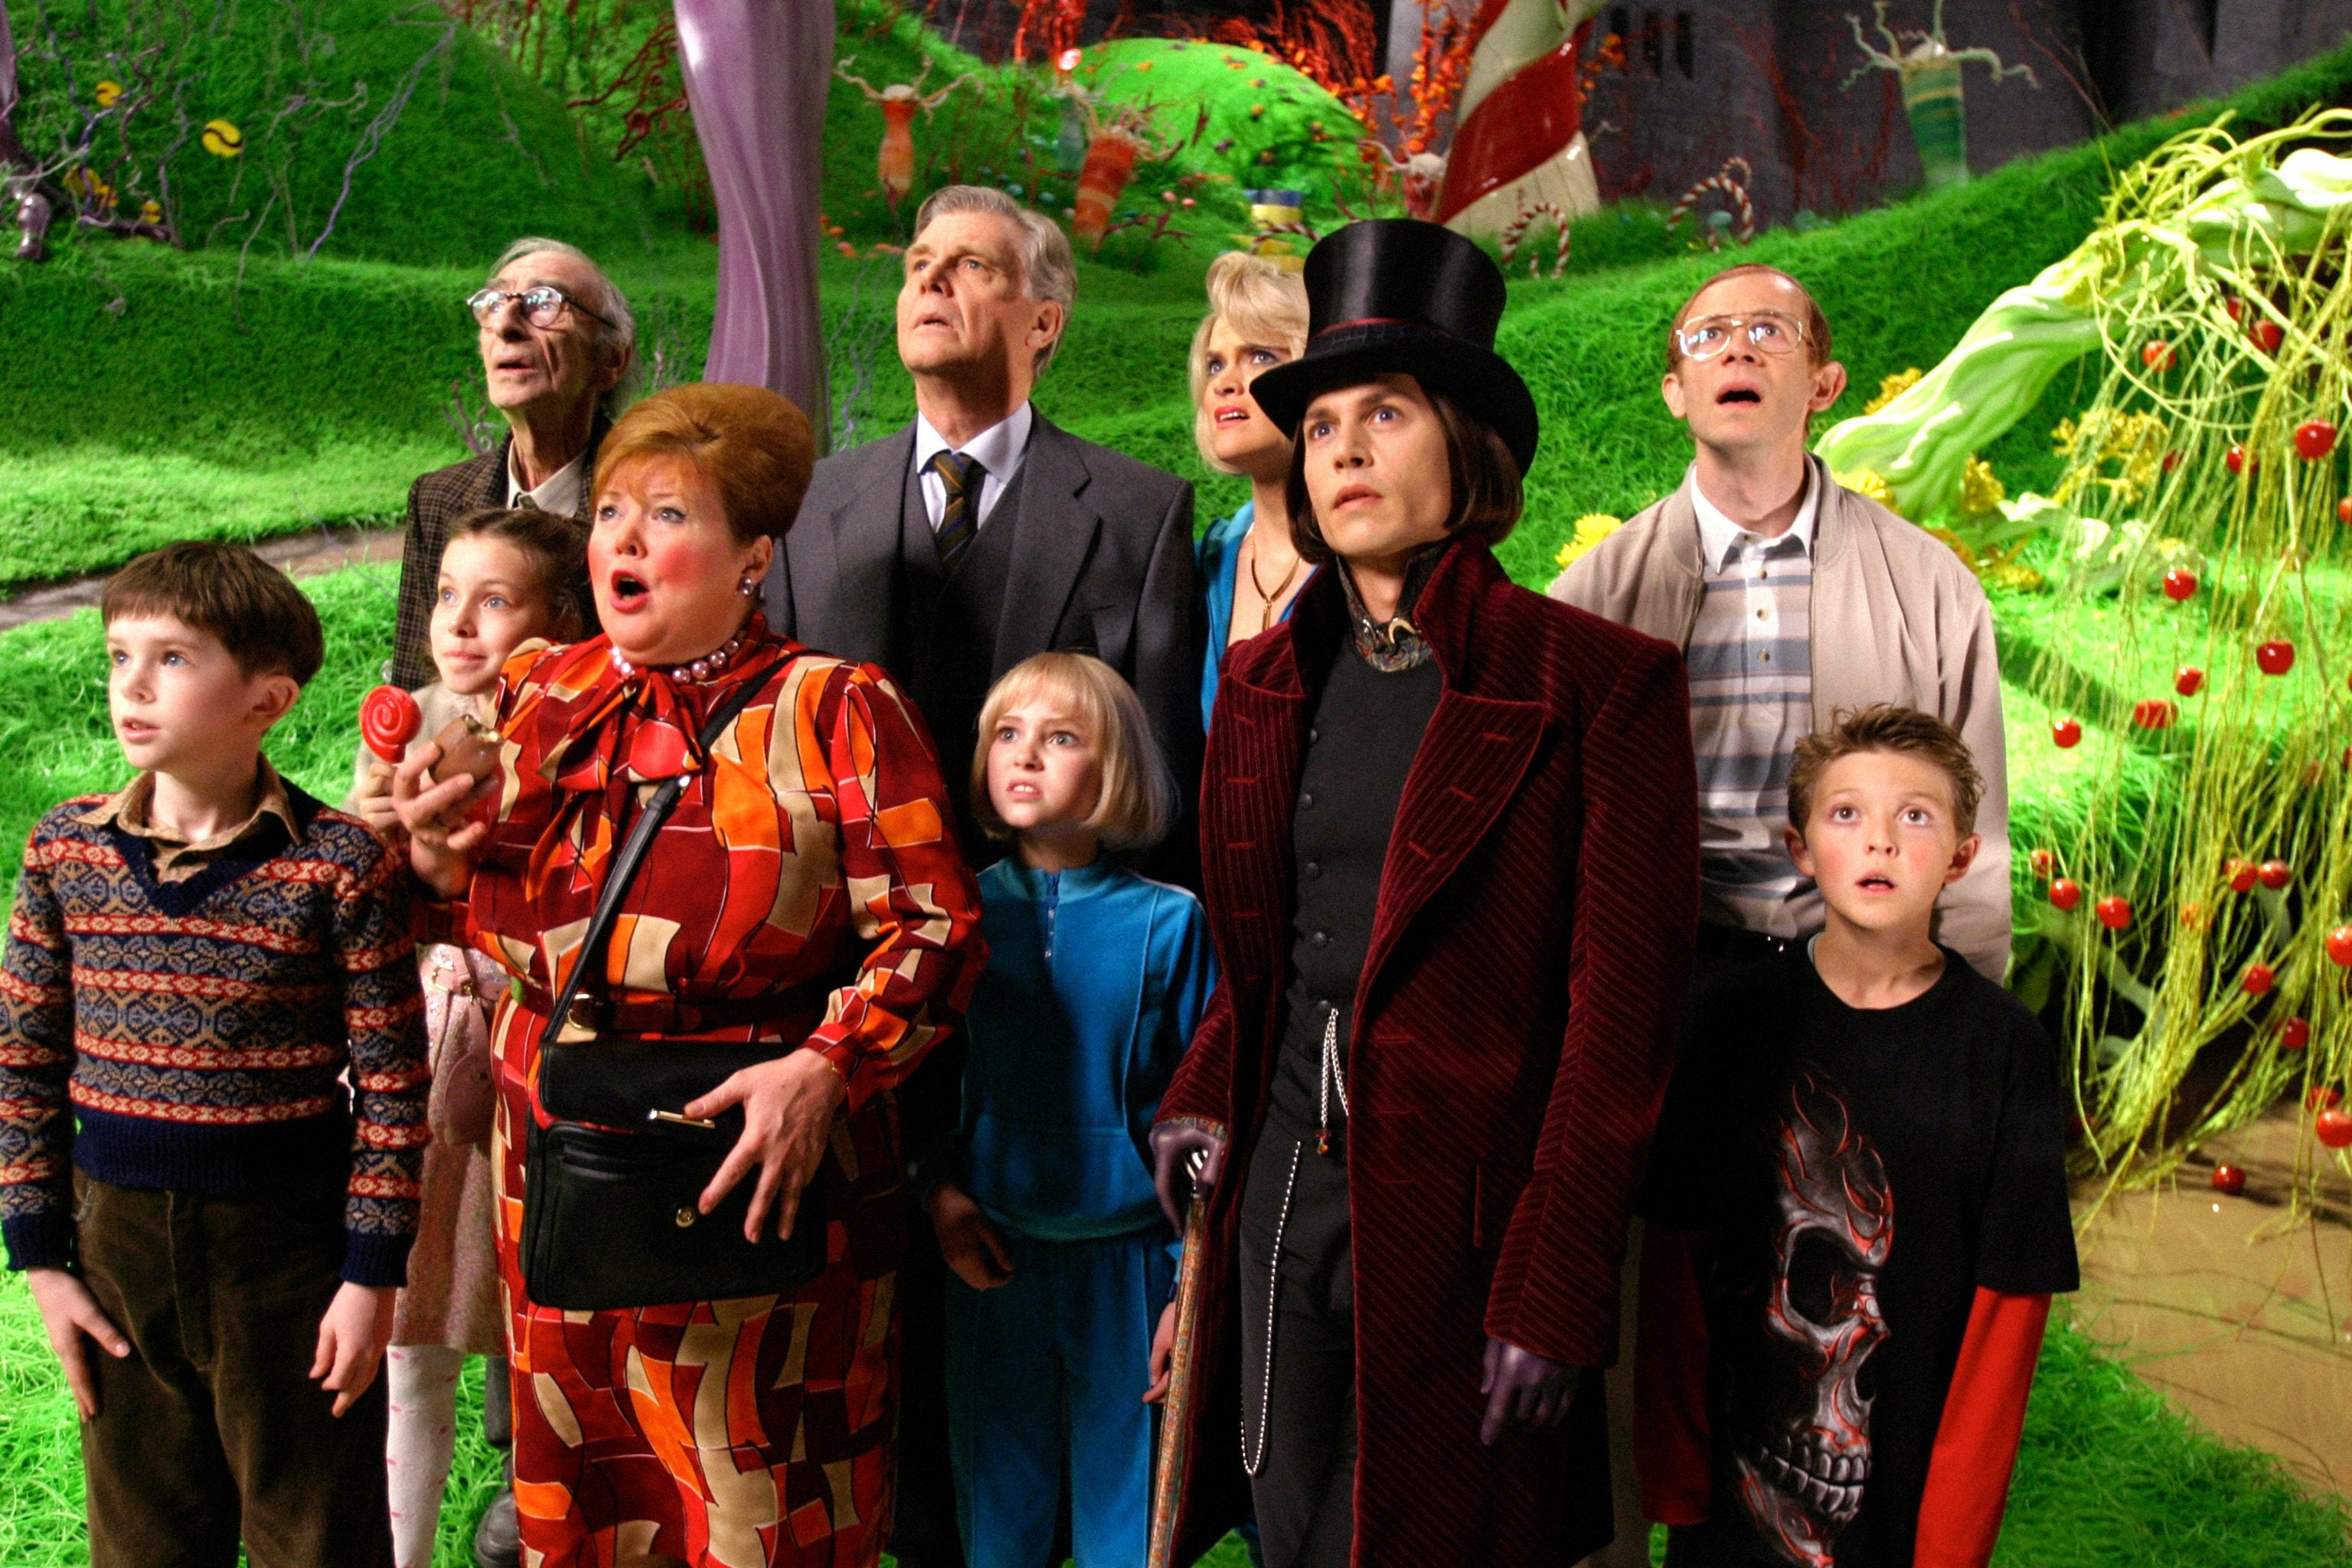 ways charlie and the chocolate factory is really a horror 9 ways charlie and the chocolate factory is really a horror movie disguised as a children s story